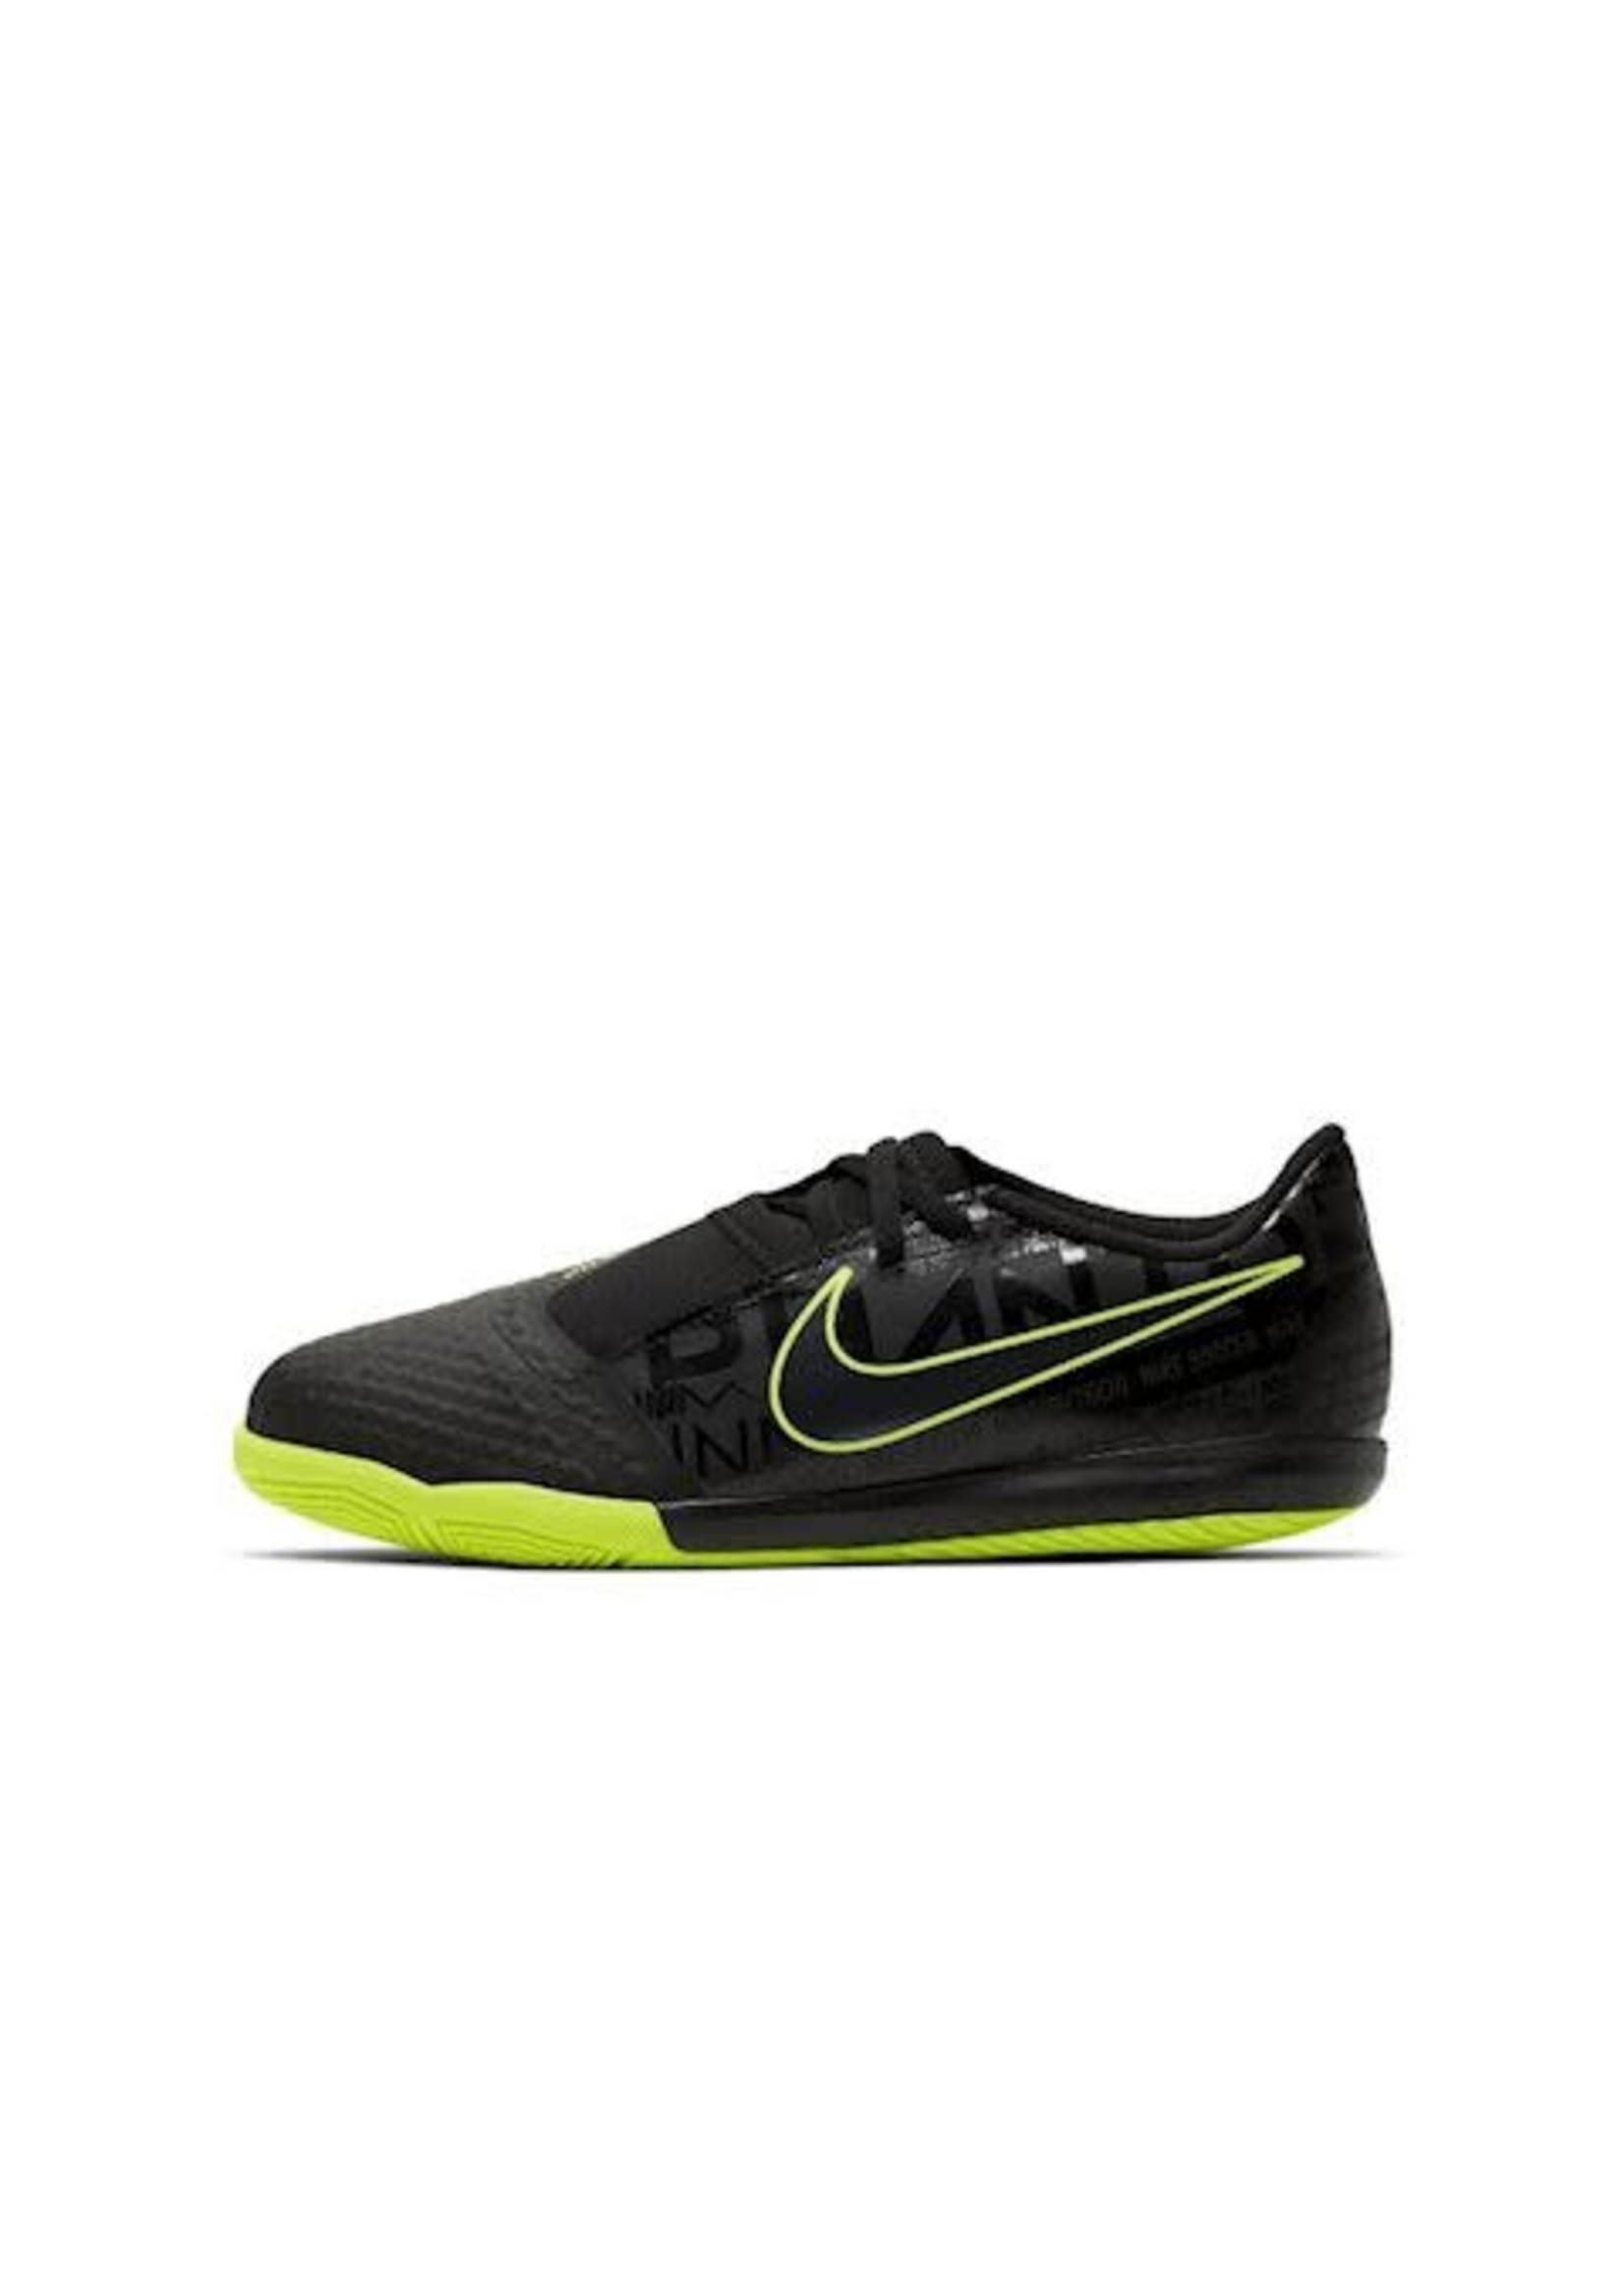 Nike Jr Phantom Venom Academy IC - Black/Volt